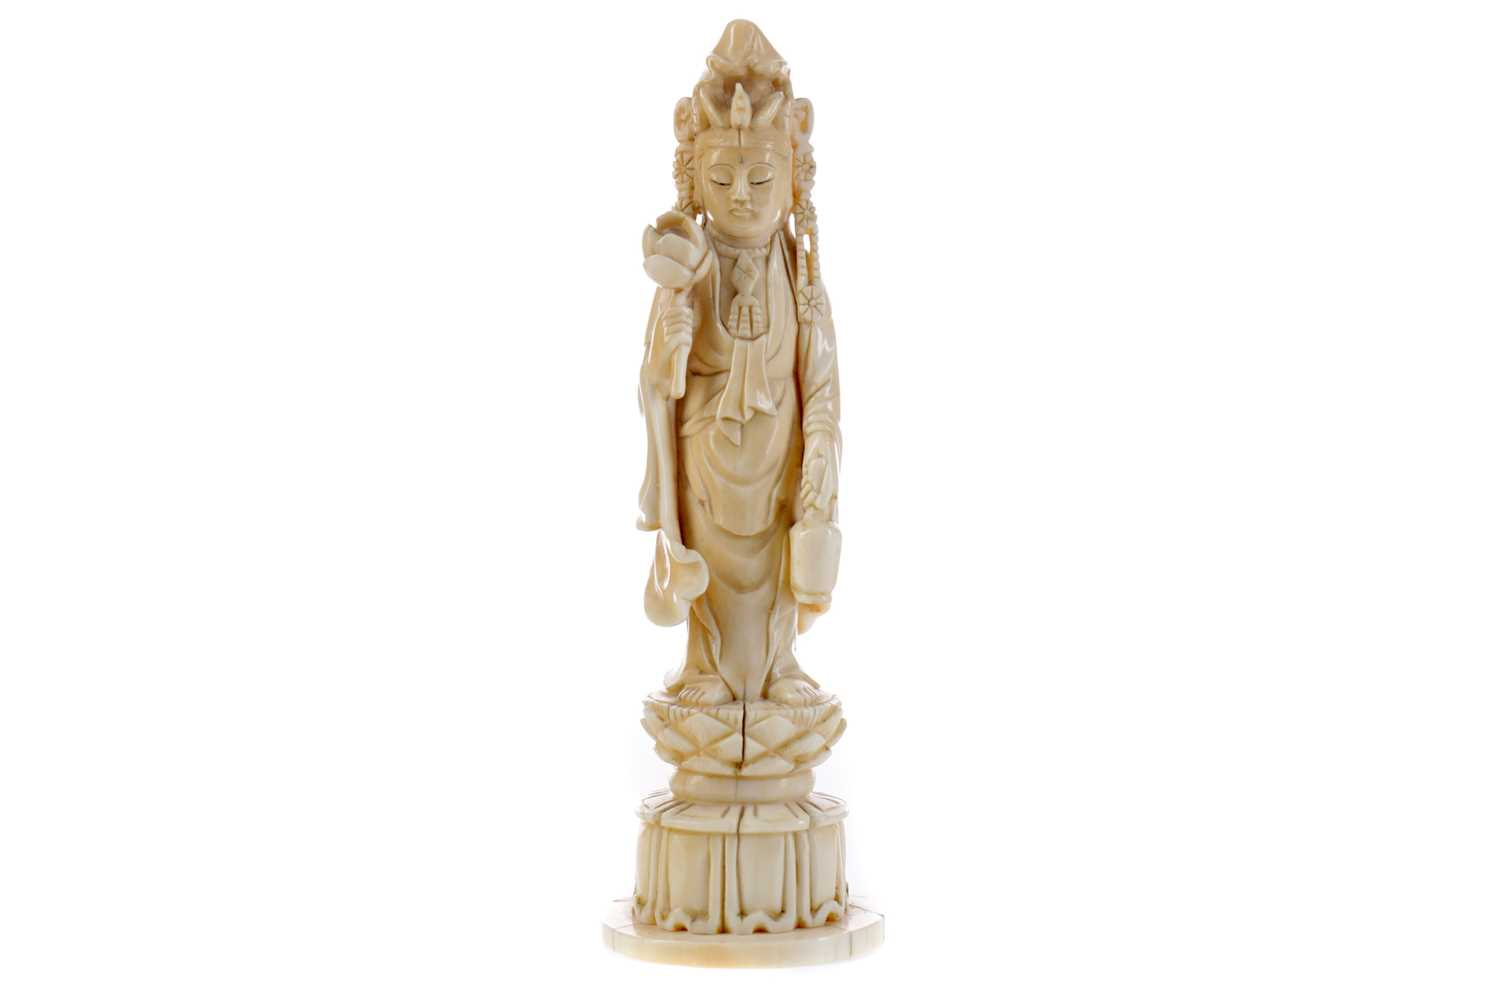 Lot 64 - A LATE 19TH CENTURY CHINESE IVORY FIGURE OF GUANYIN